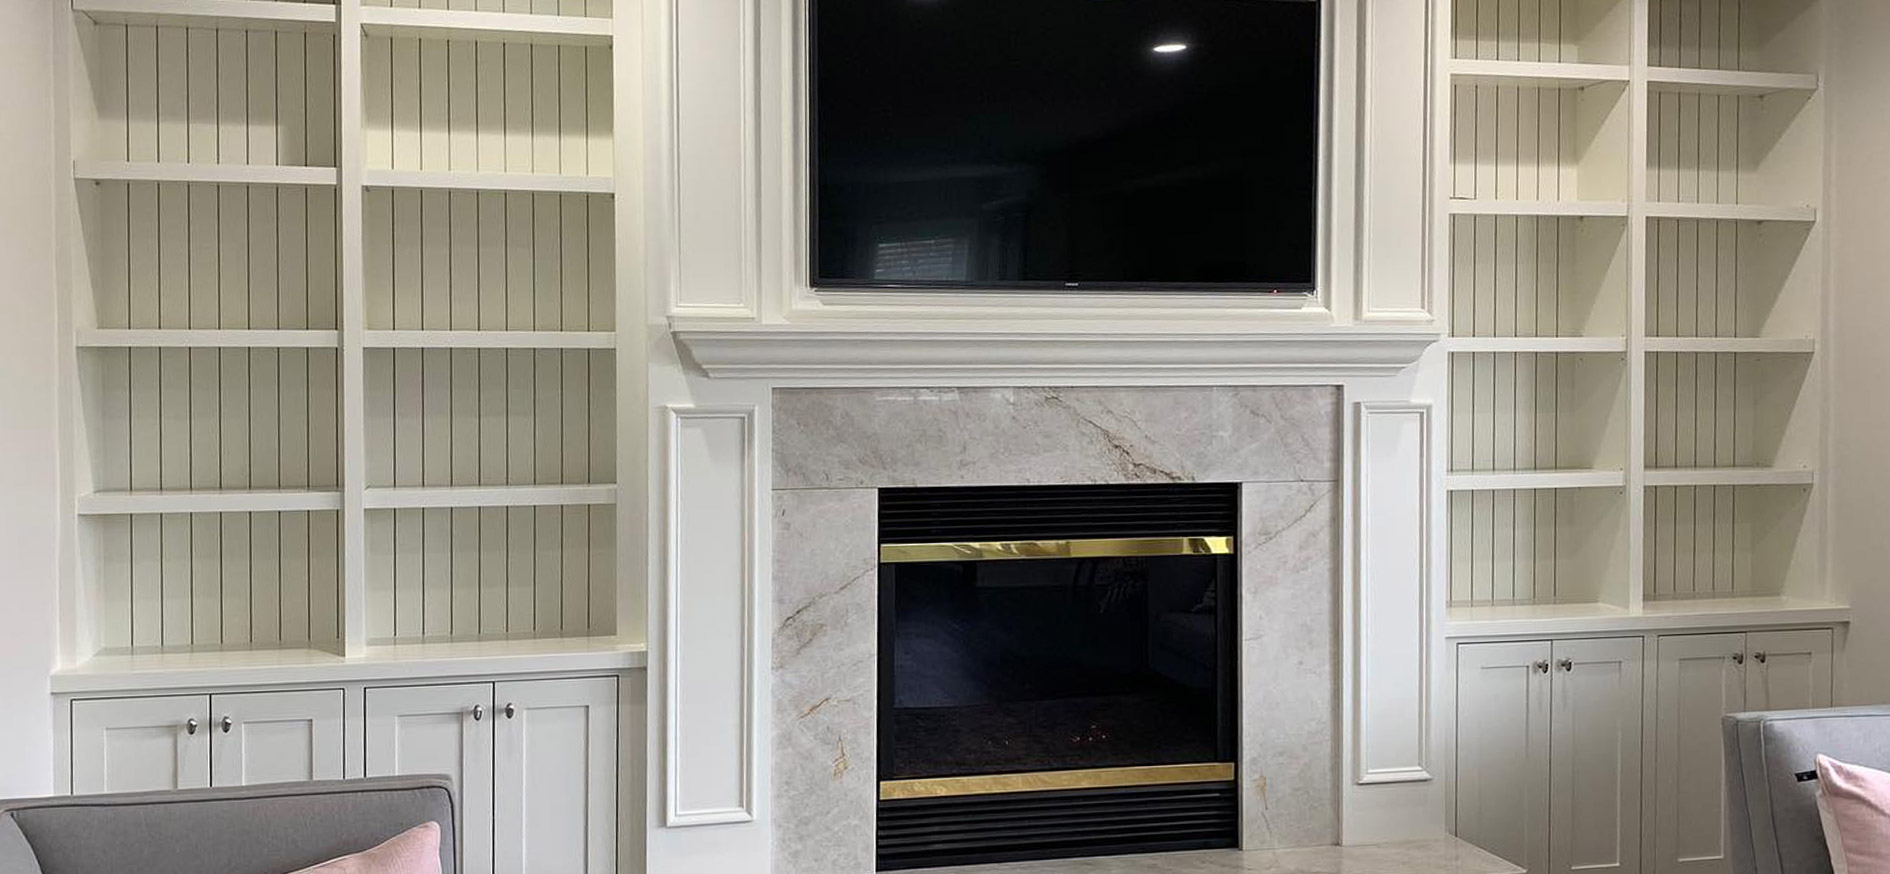 Fireplace_Cabinets.jpg